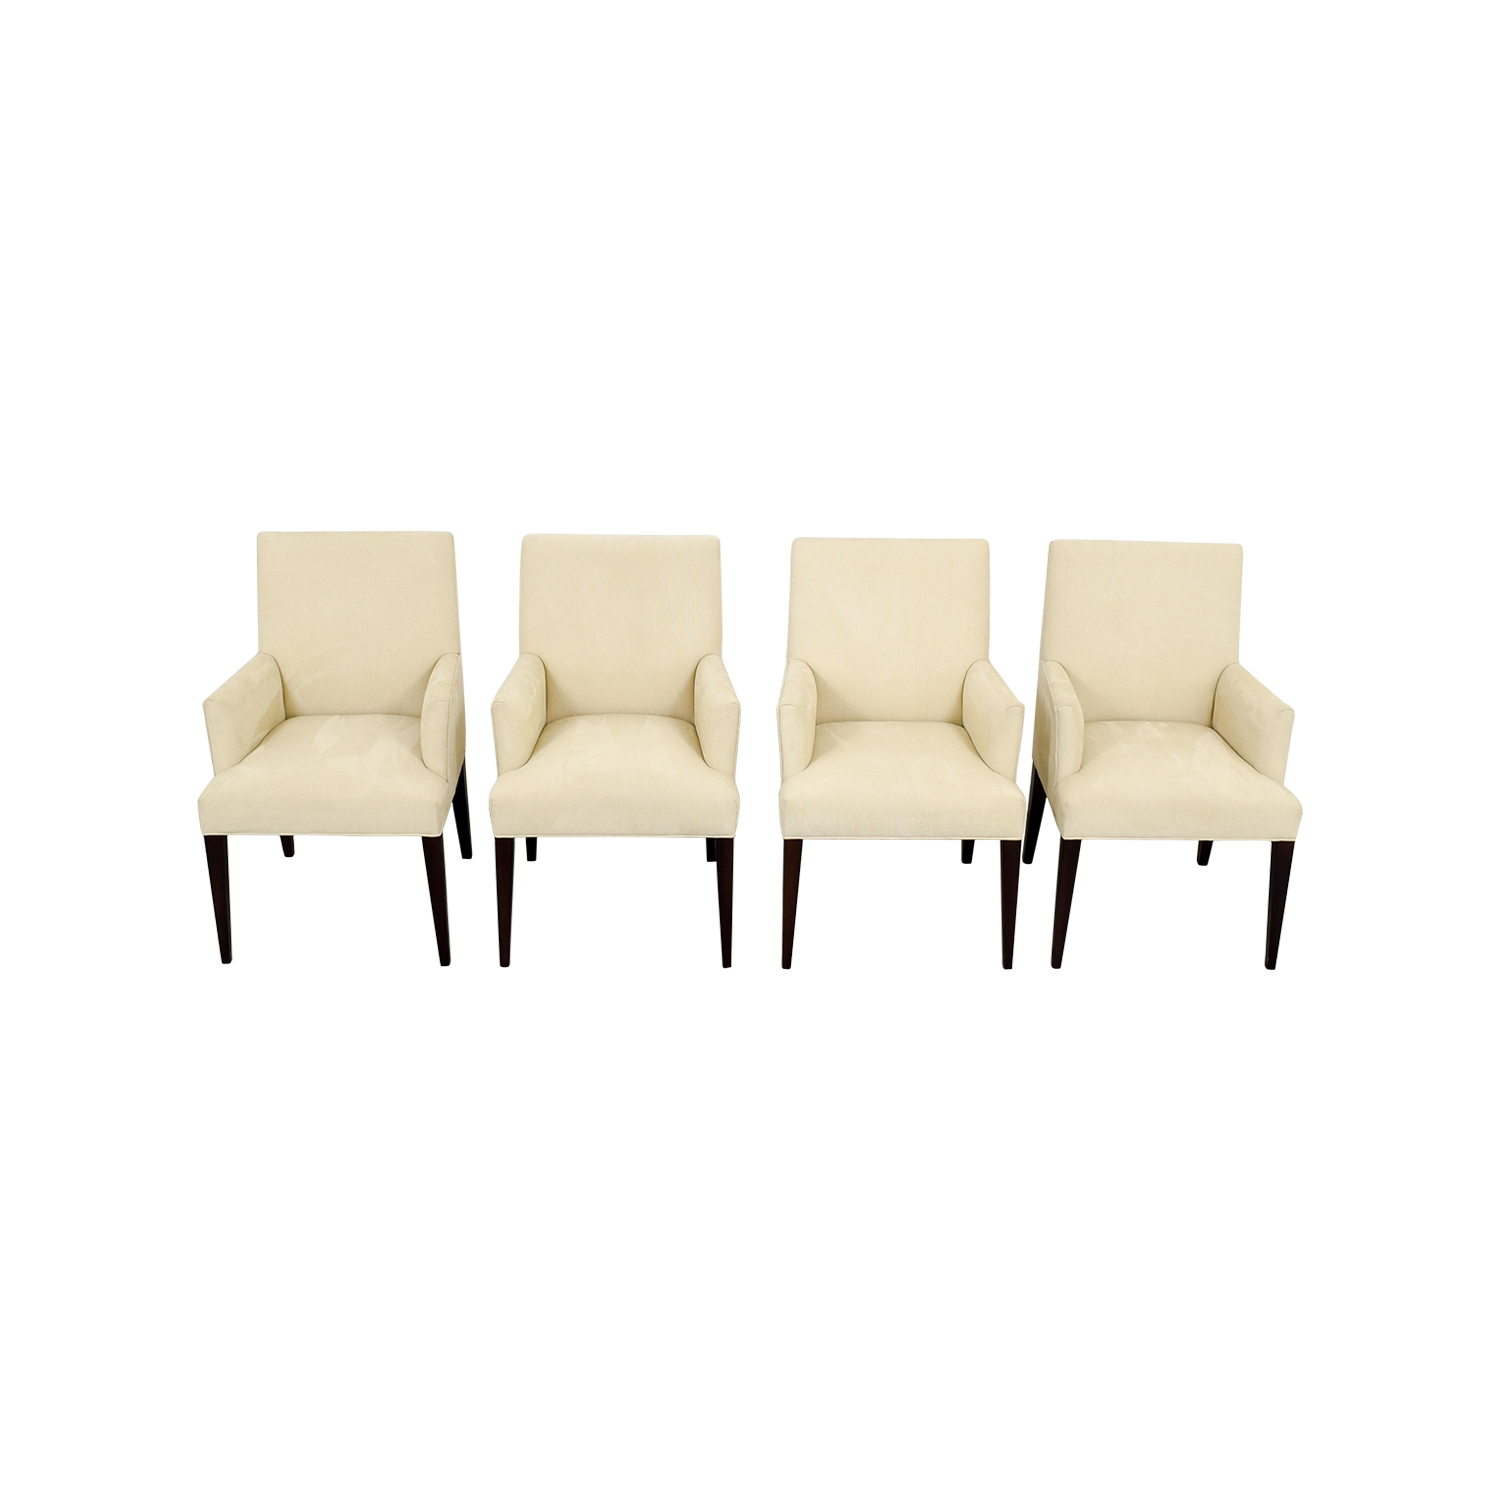 dining room chairs crate and barrel 30 second chair stand results 71 off miles